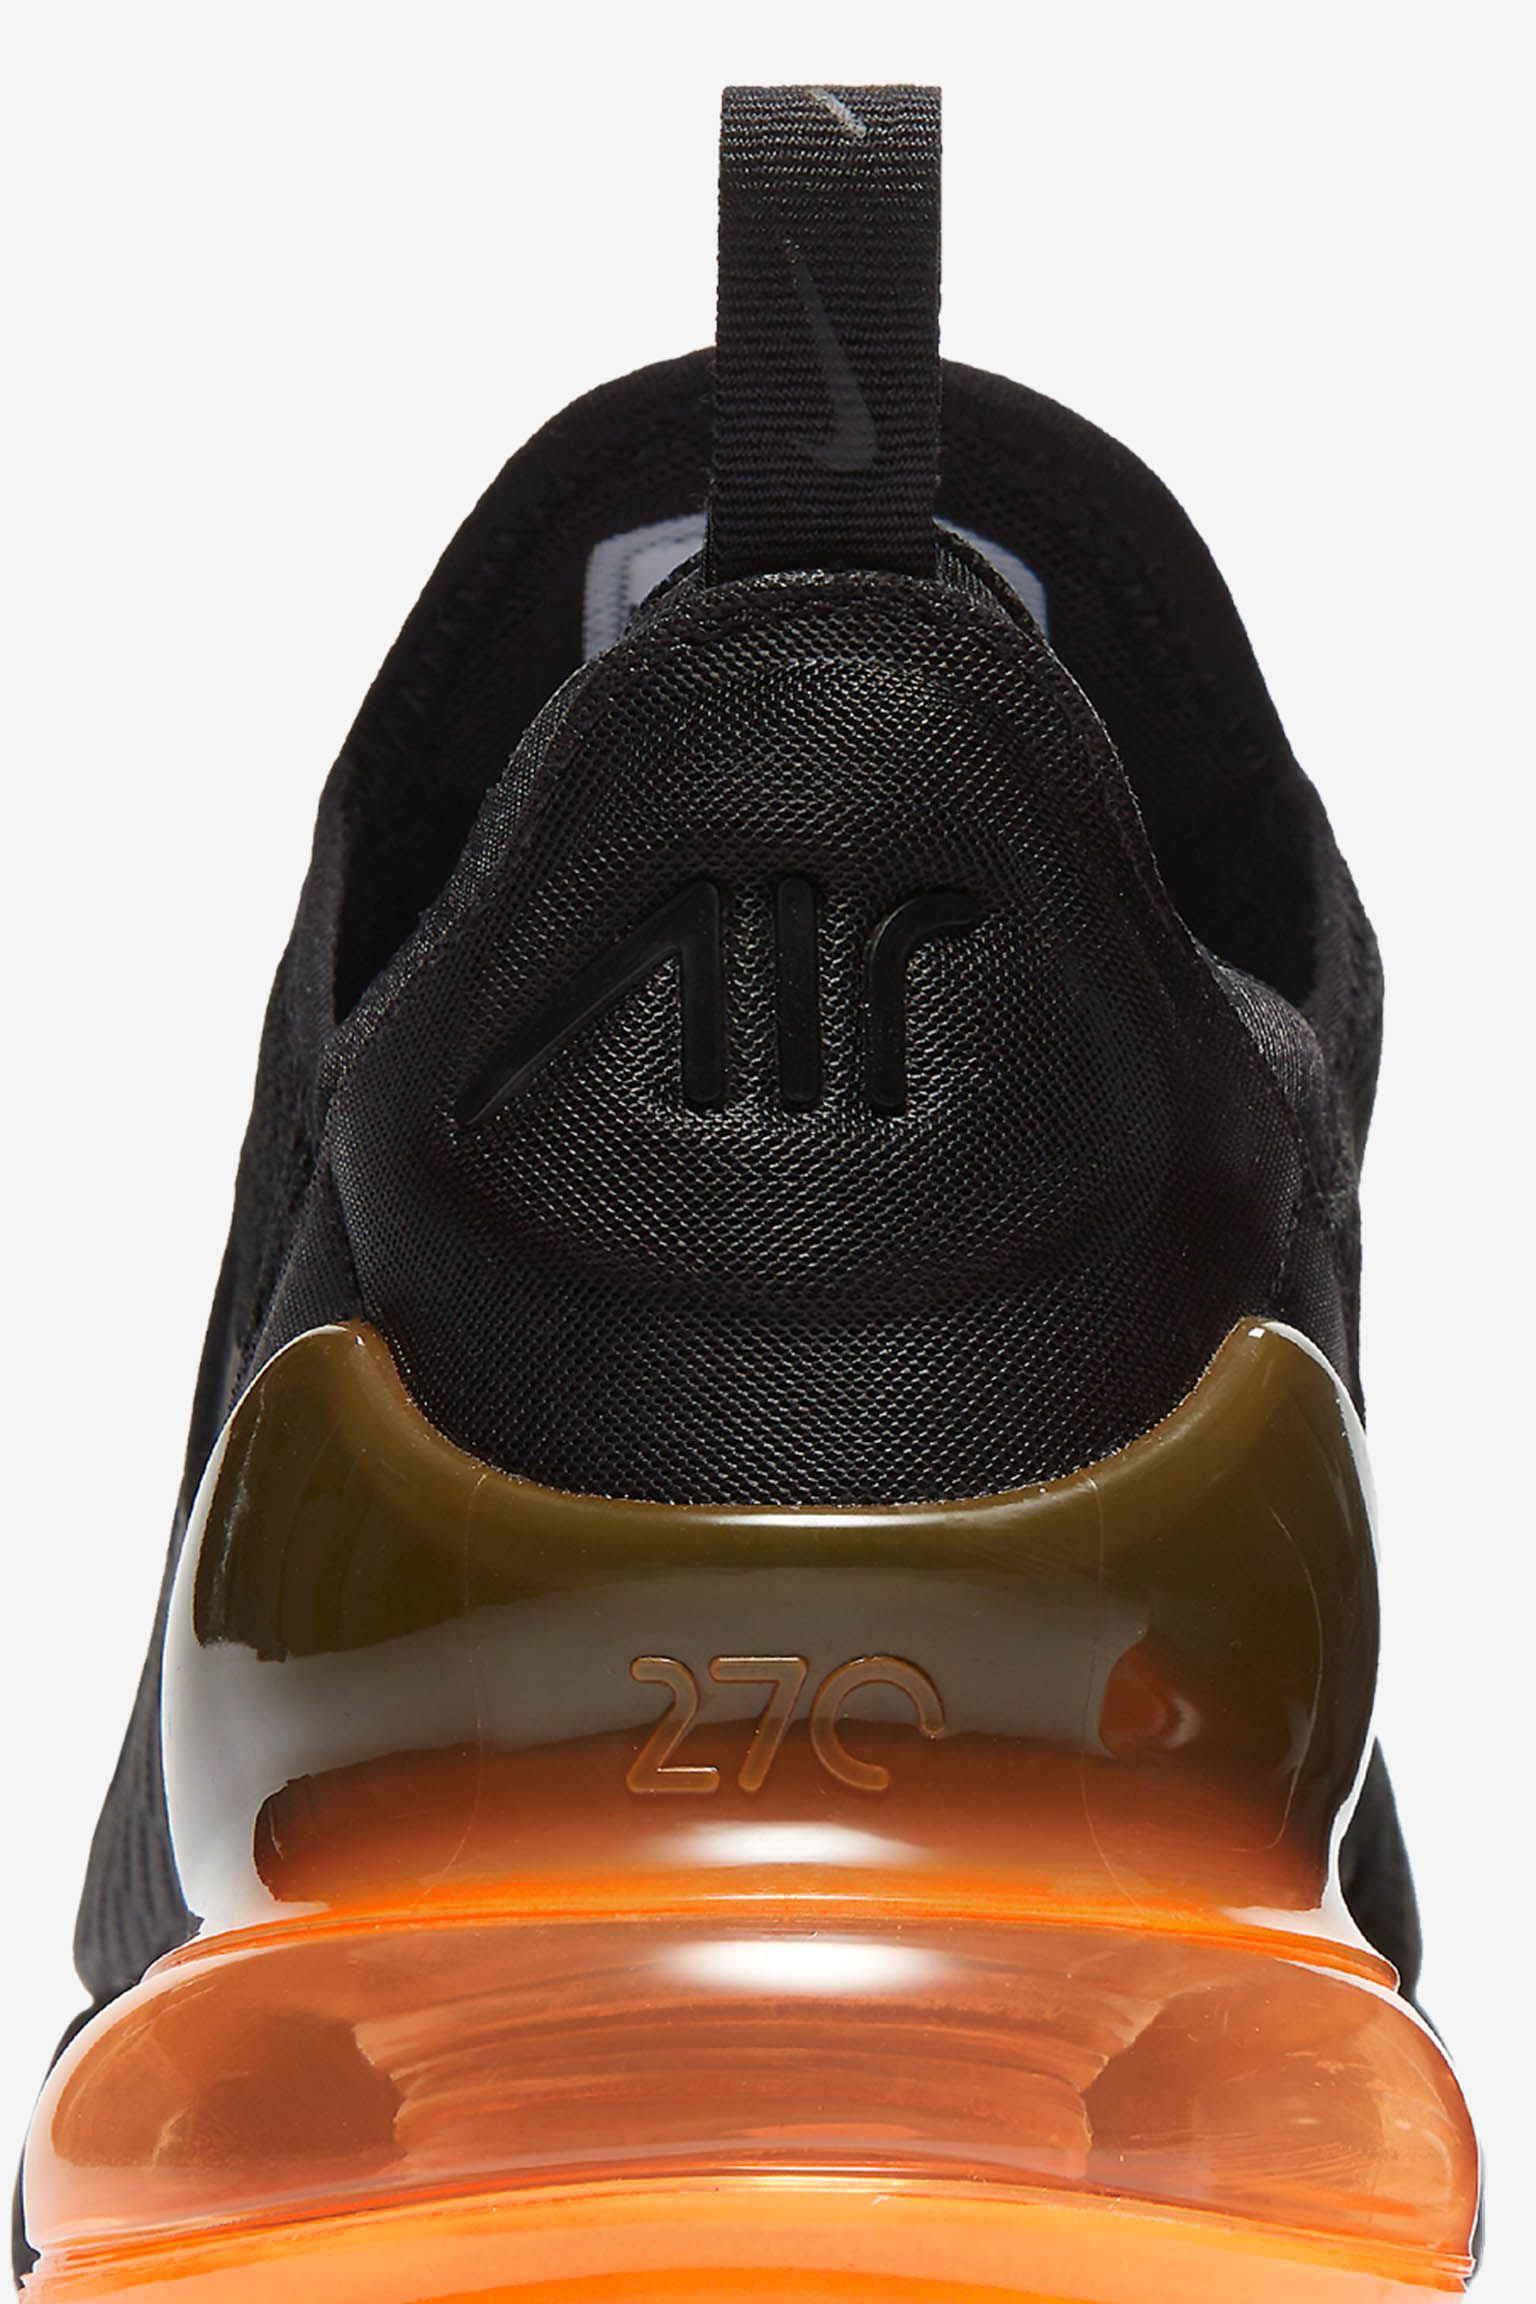 Nike Air Max 270 'Black & Tonal Orange' Release Date